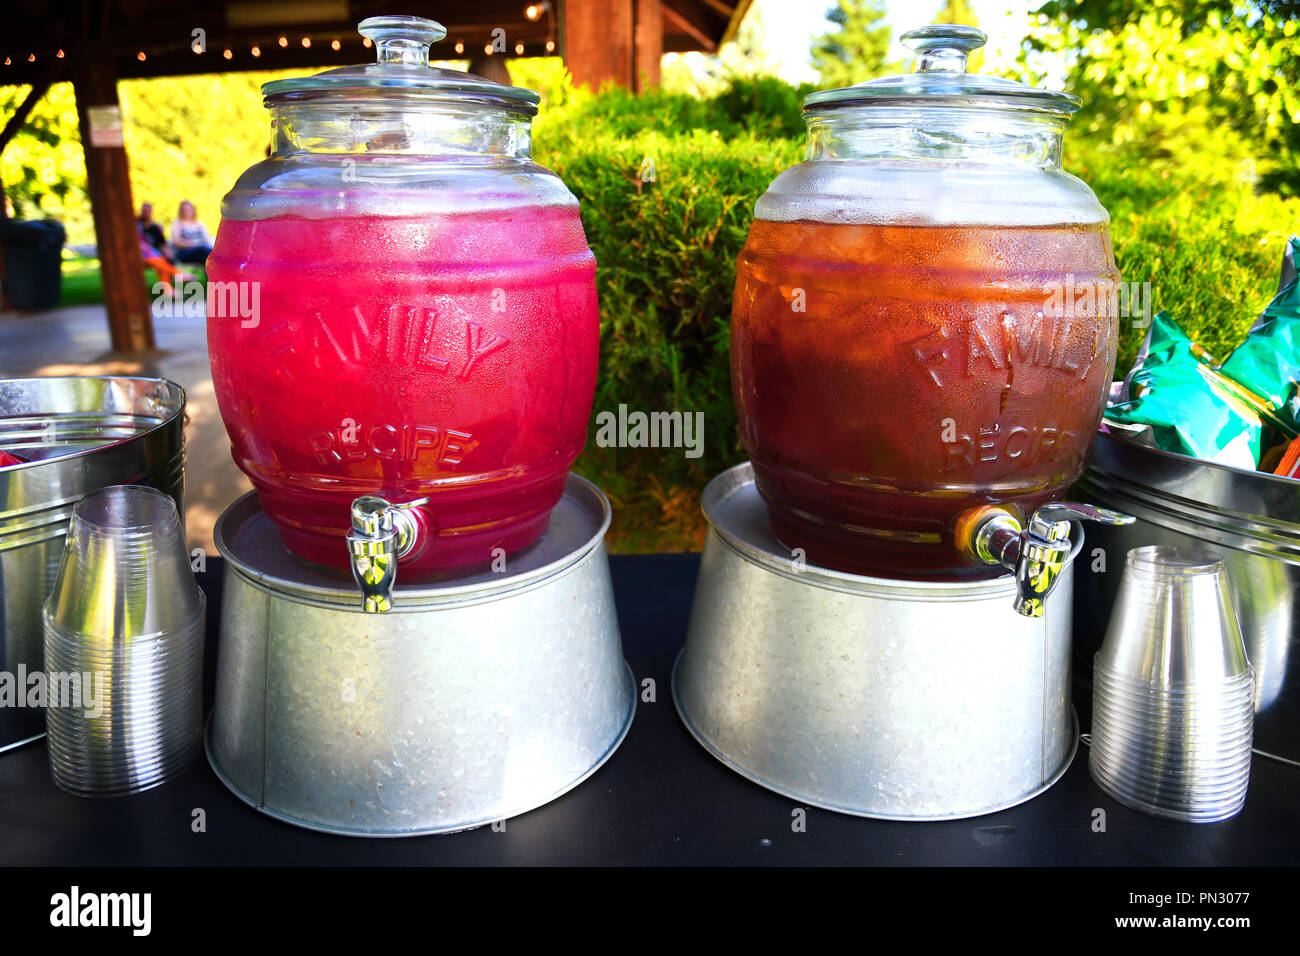 Jugs of cold huckleberry lemonade and iced tea on galvanized aluminum tubs displayed at an outdoor event - Stock Image